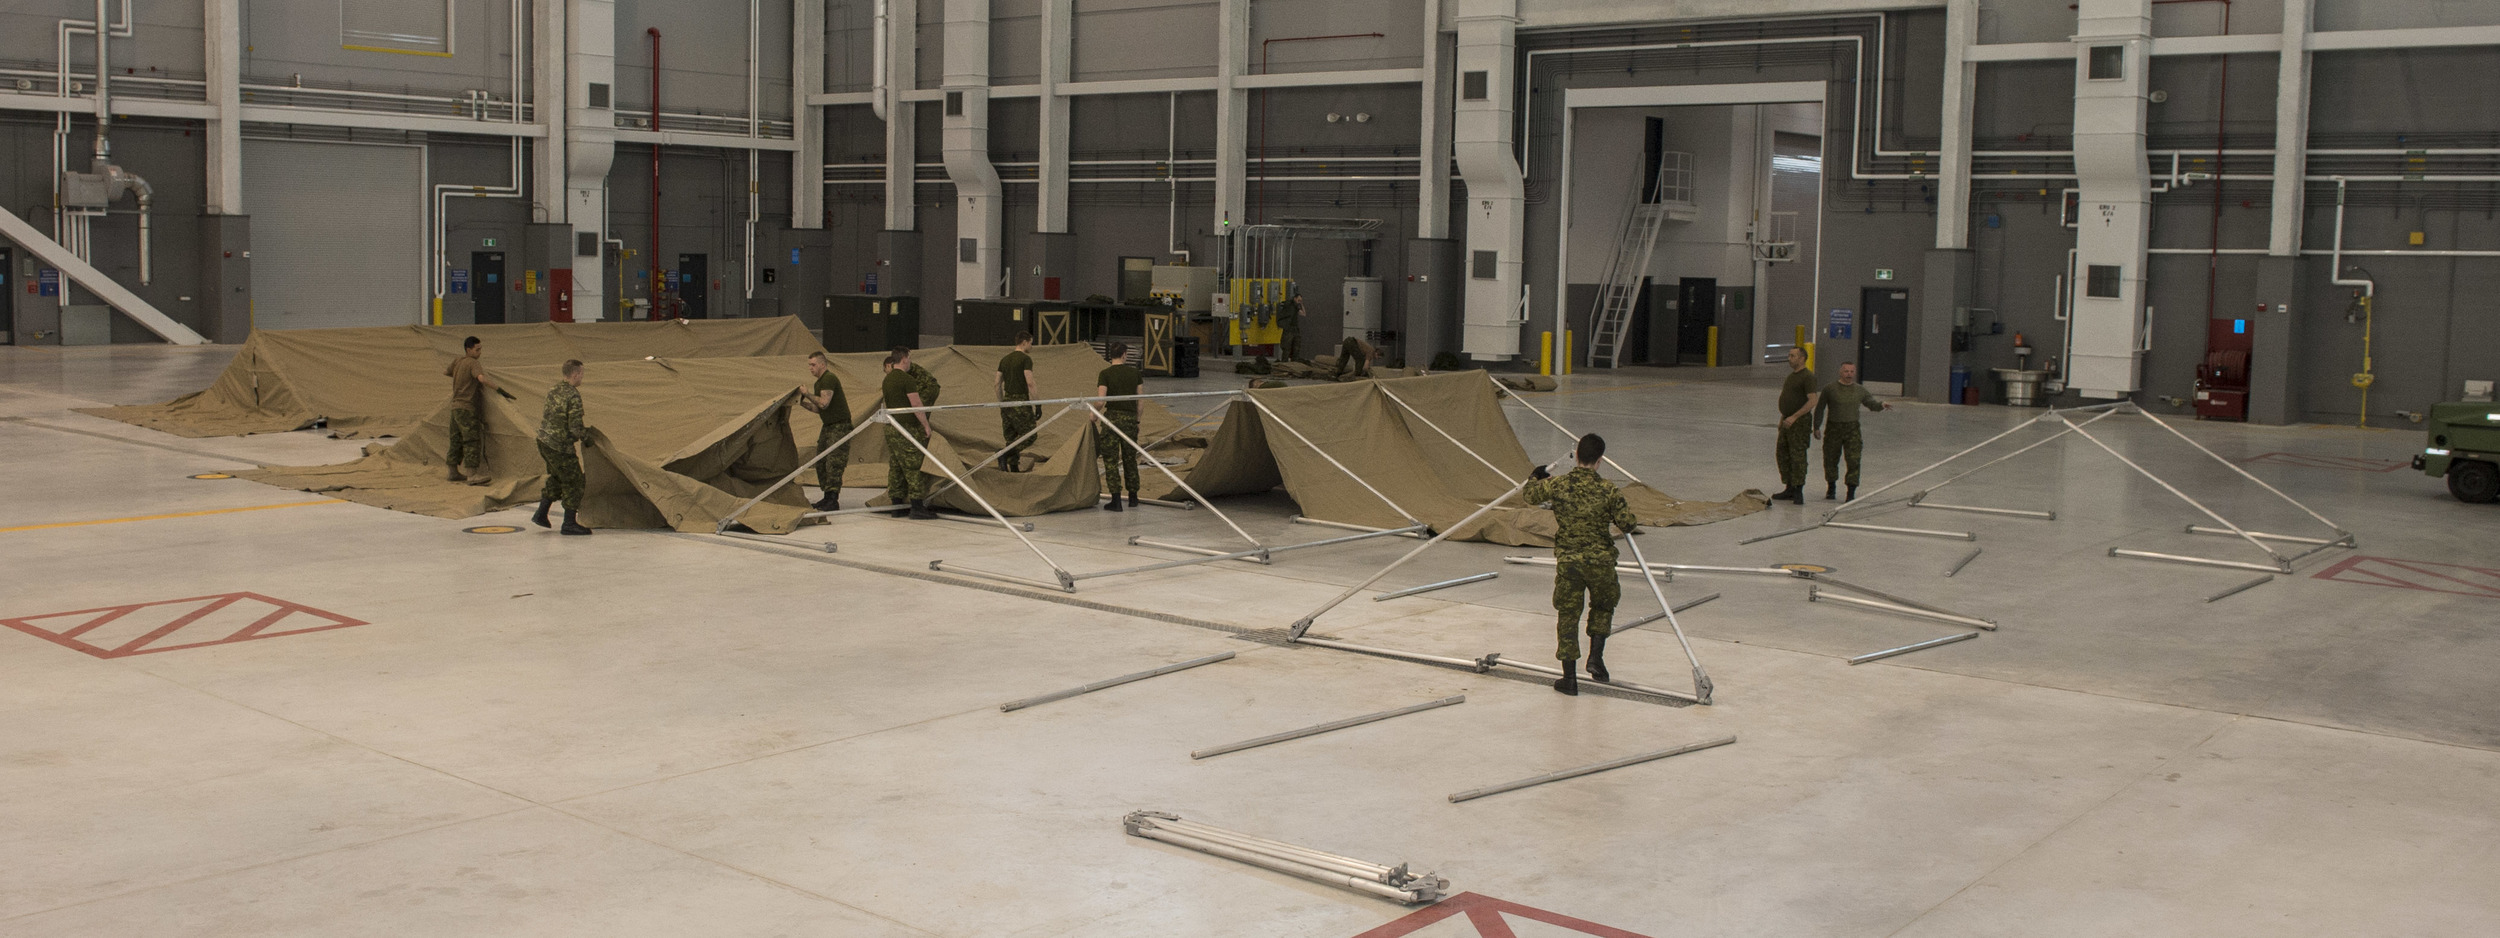 "Members of the Disaster Assistance Response Team (DART), check the serviceability of modular - or ""mod"" - tents at CFB Trenton during Exercise READY RENAISSANCE 2015 on February 23, 2015."